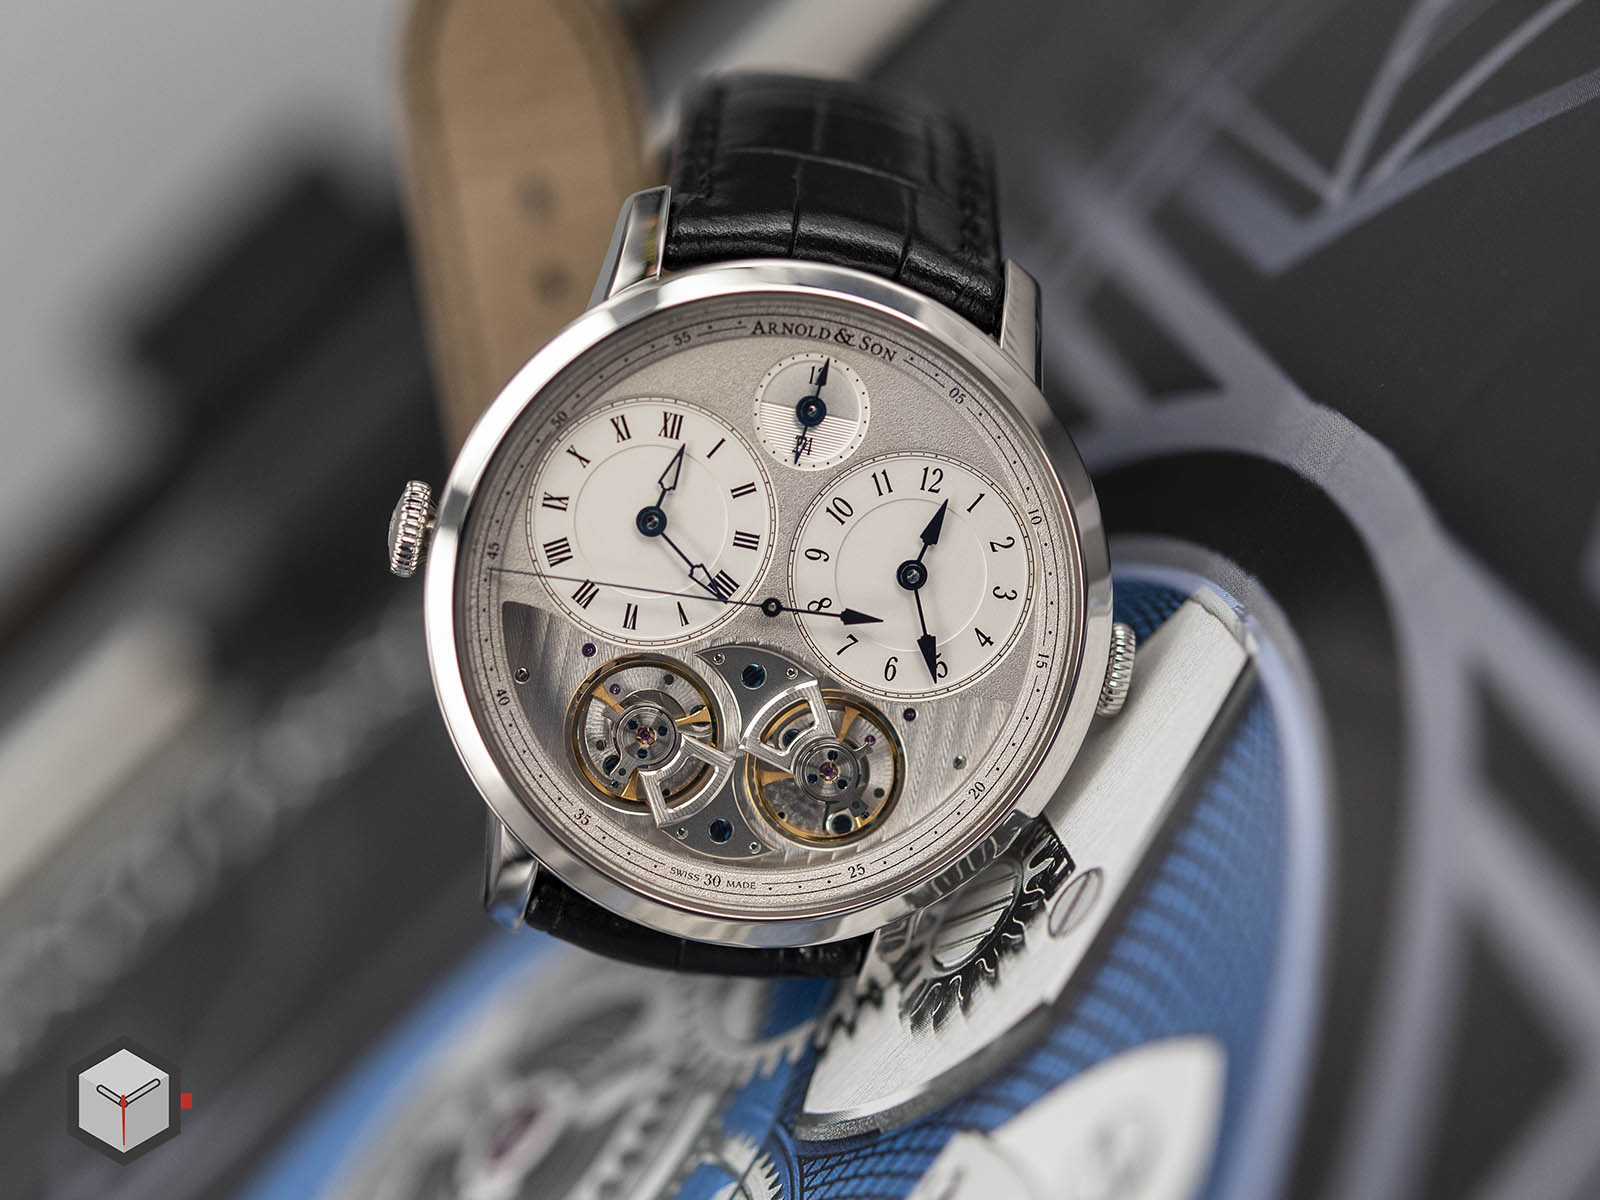 1dgas-s01a-c121s-arnold-son-dbg-equation-gmt-3.jpg